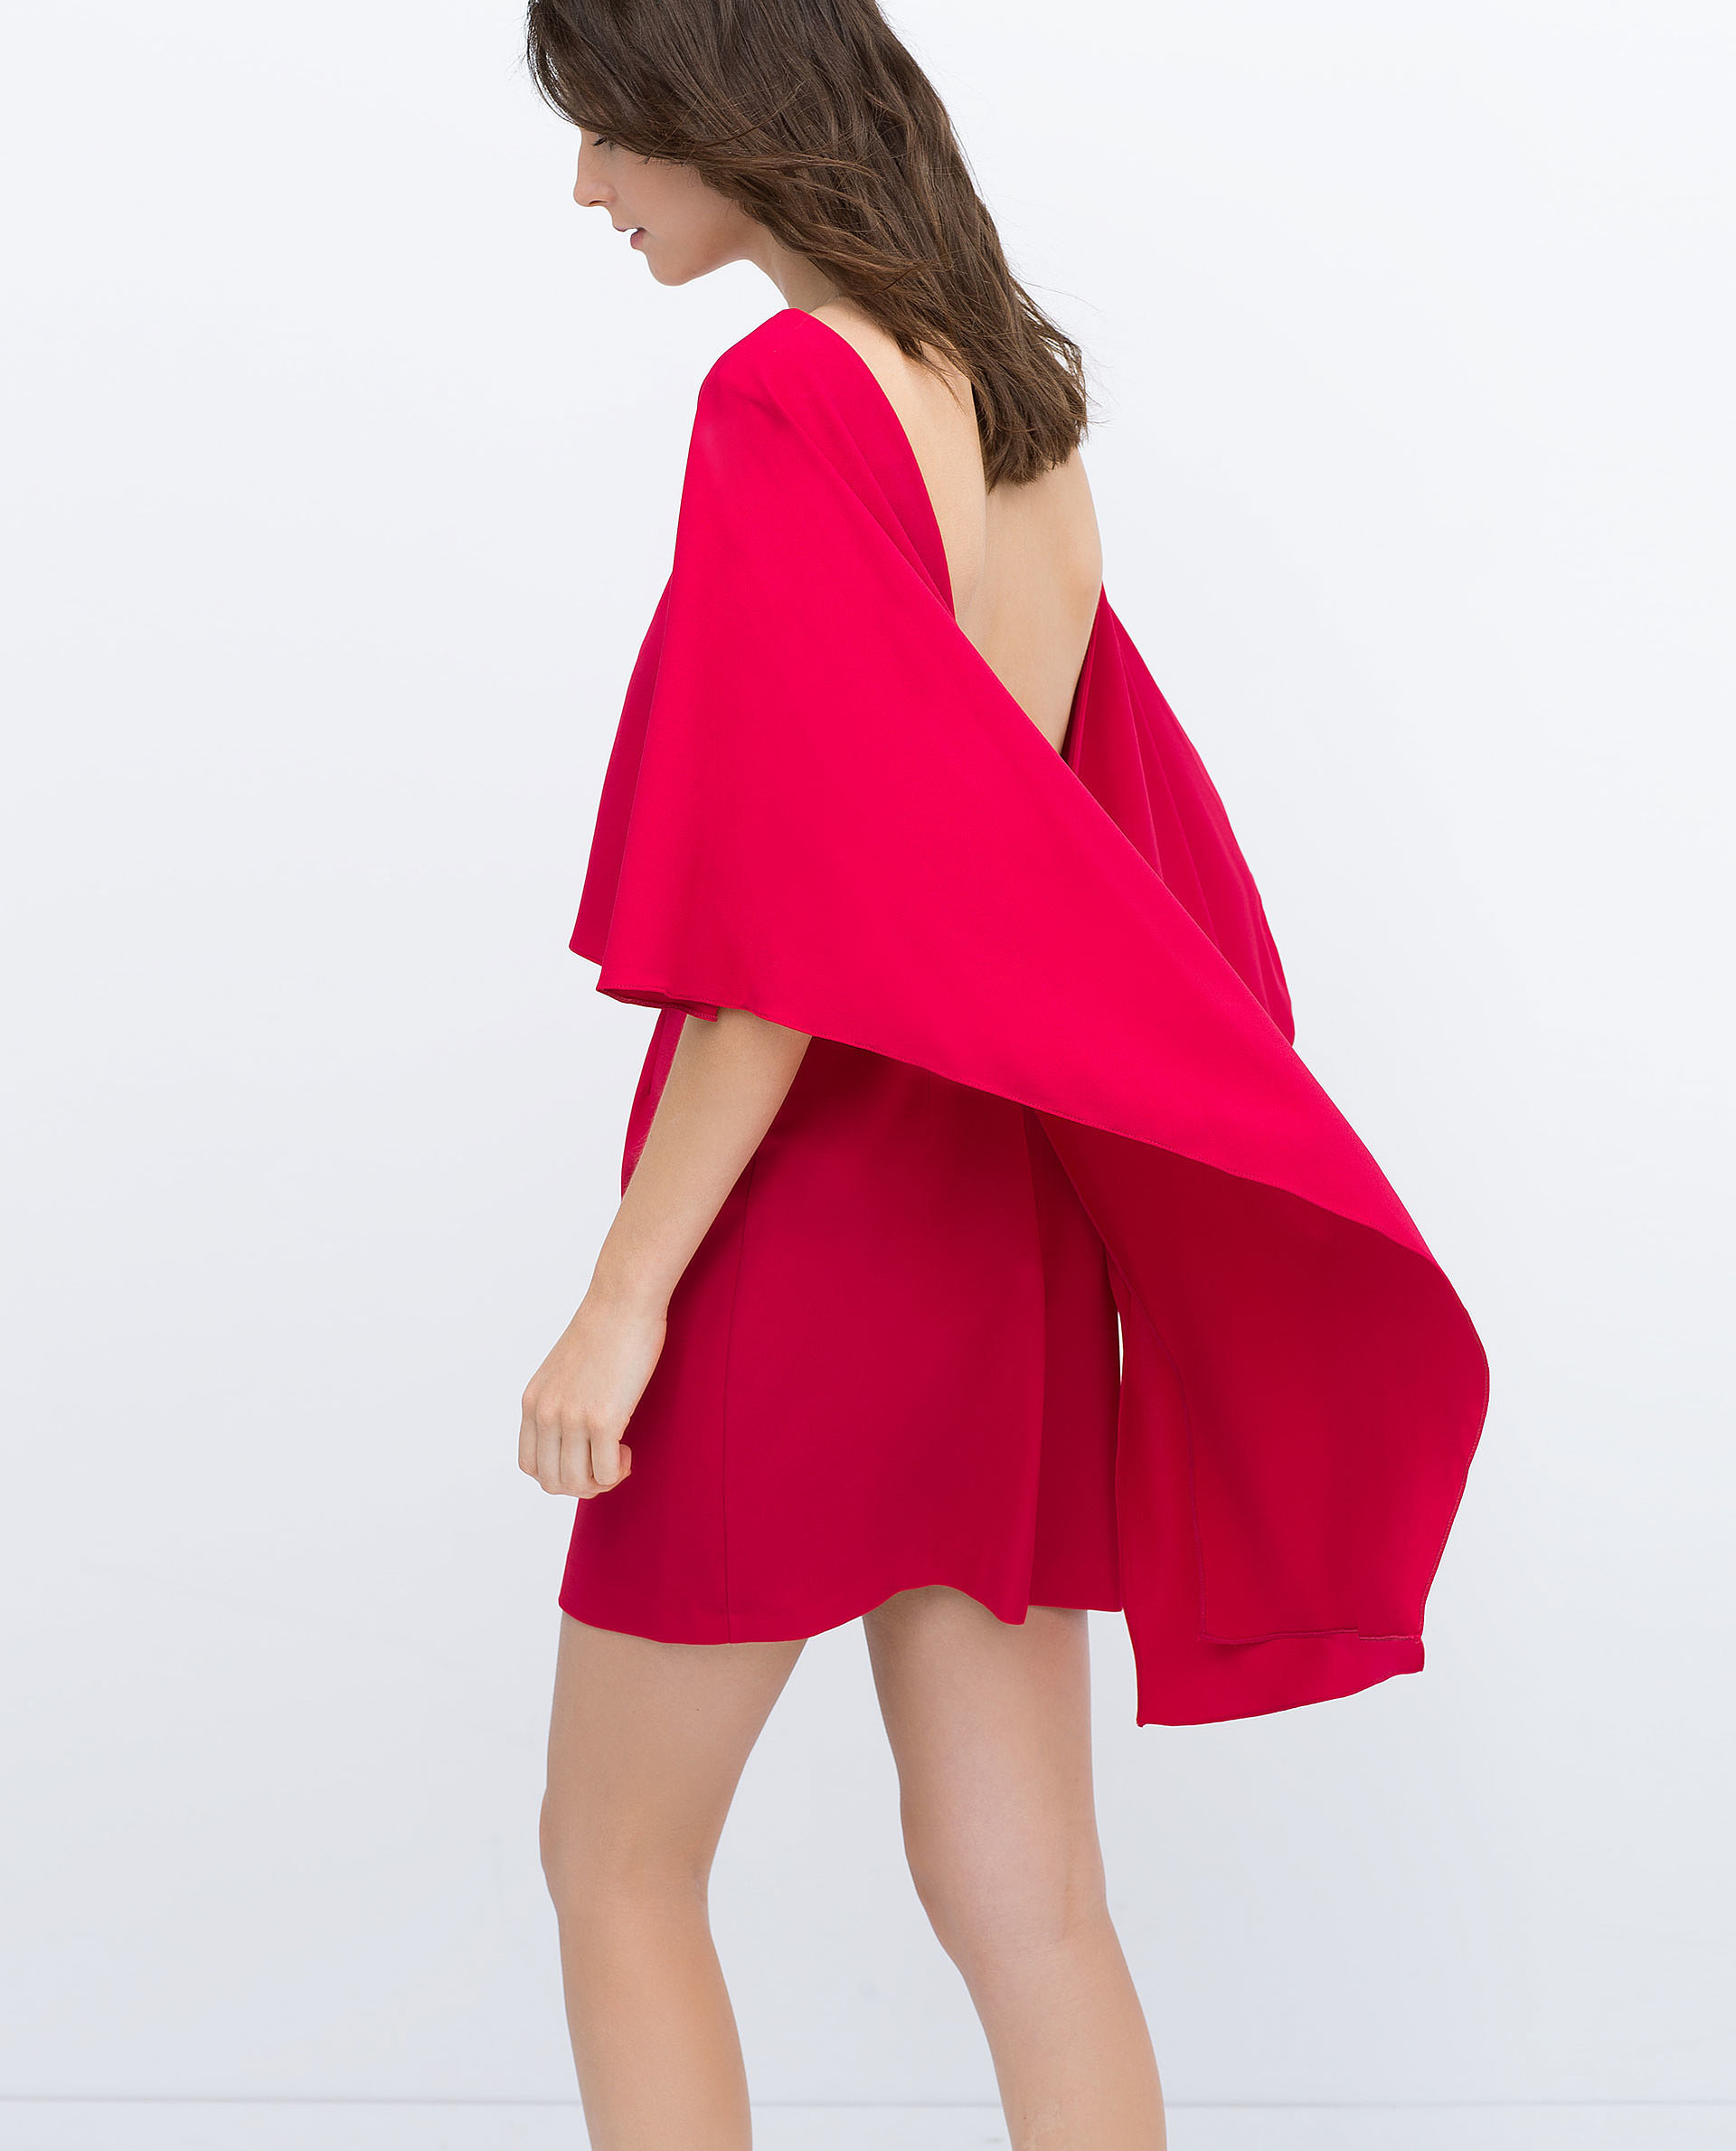 zara cape dress with low back 100 26 flawless dresses for your end of summer party plans. Black Bedroom Furniture Sets. Home Design Ideas